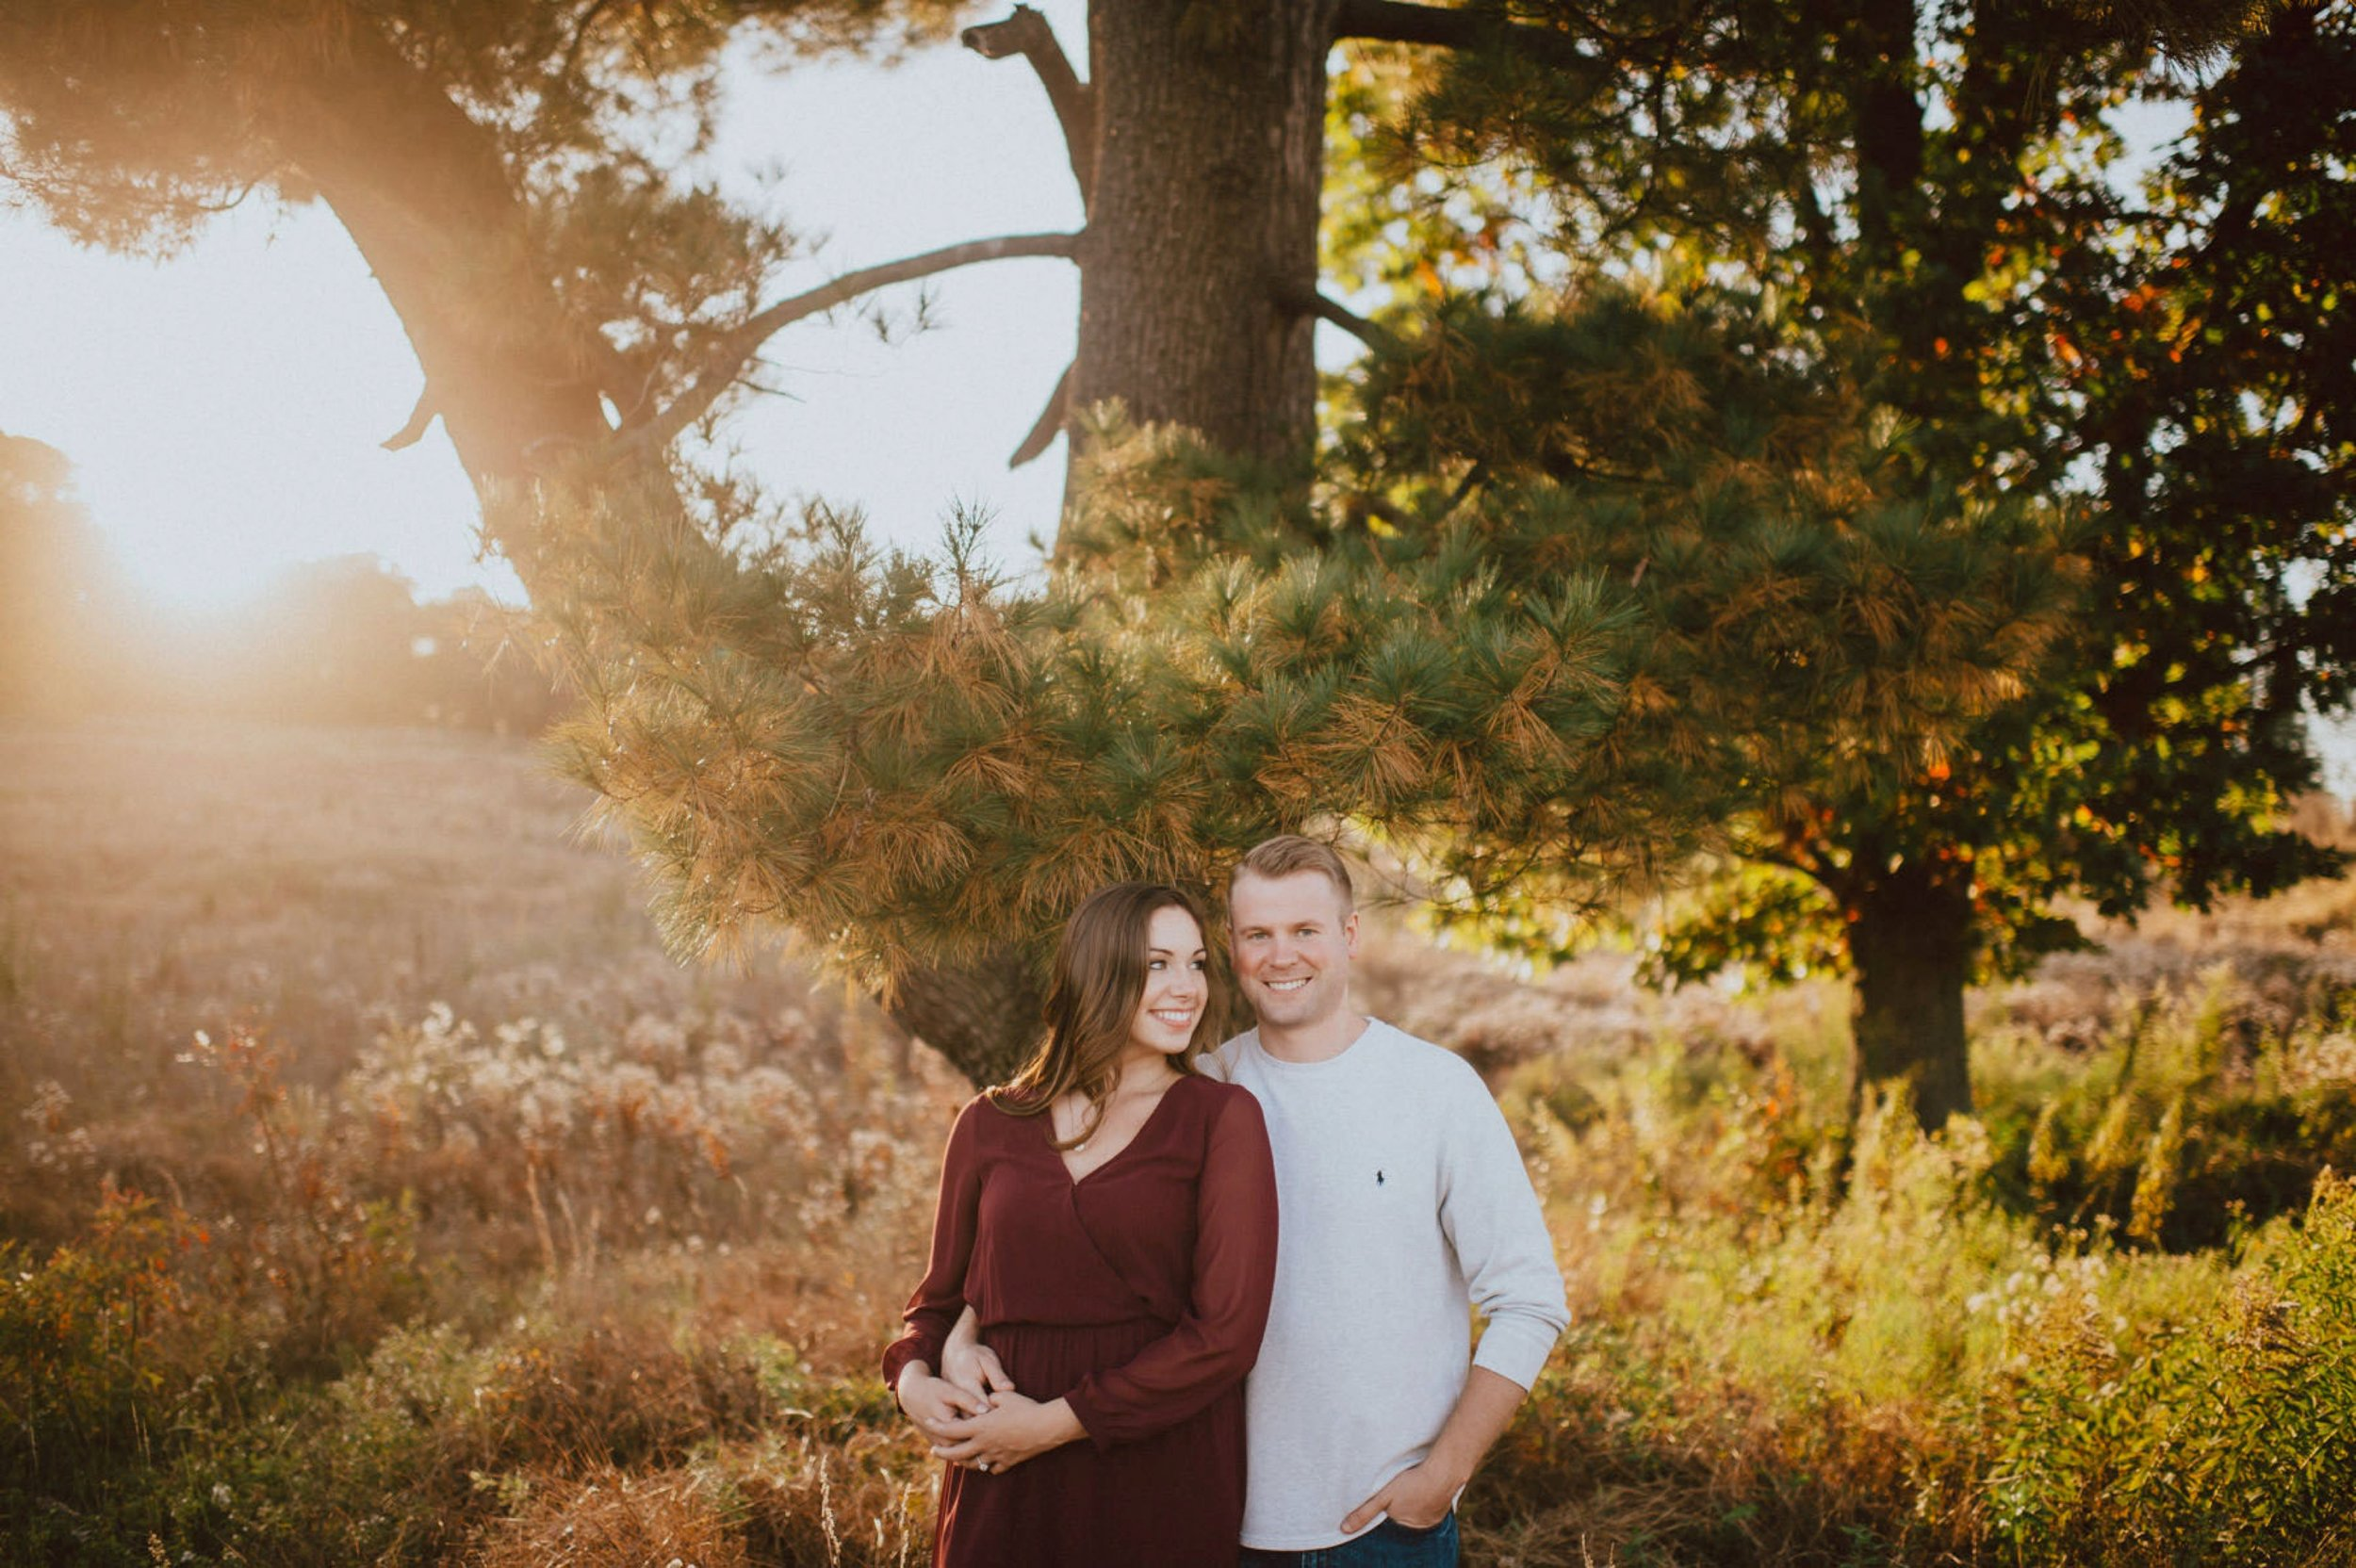 valley-forge-park-engagement-session-8.jpg